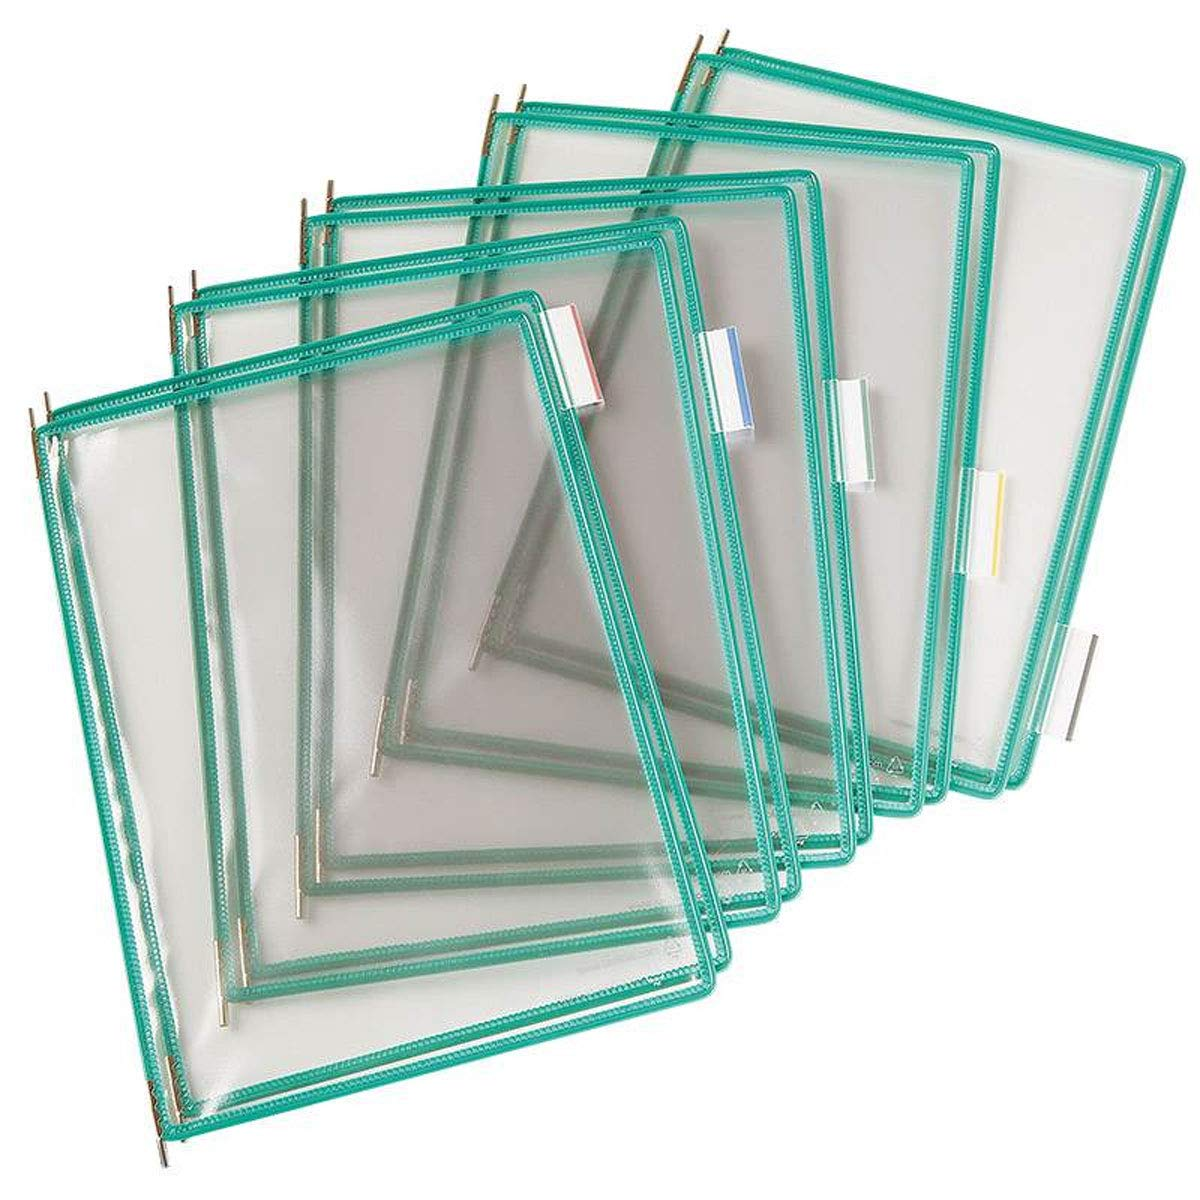 Tarifold #P050 Pivoting Pockets for Wall, Desk or Rotary Systems, Green, 10/Pack